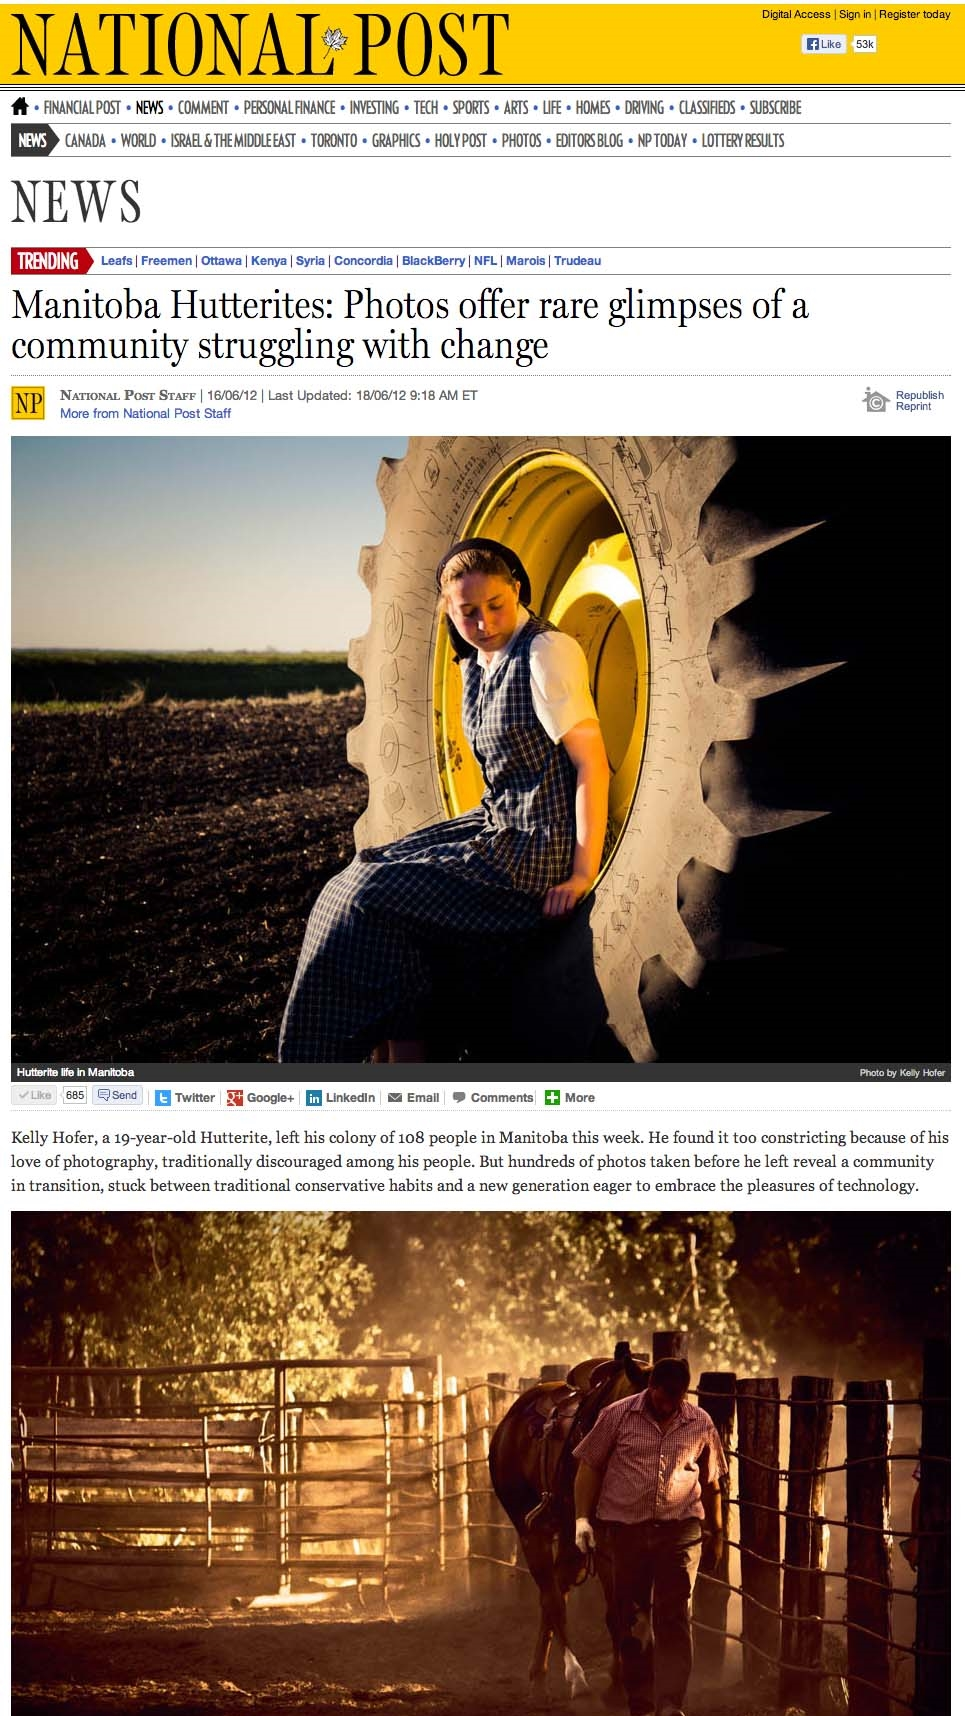 Manitoba Hutterites  Photos offer rare glimpses of a community struggling with change   National Post copy.jpg